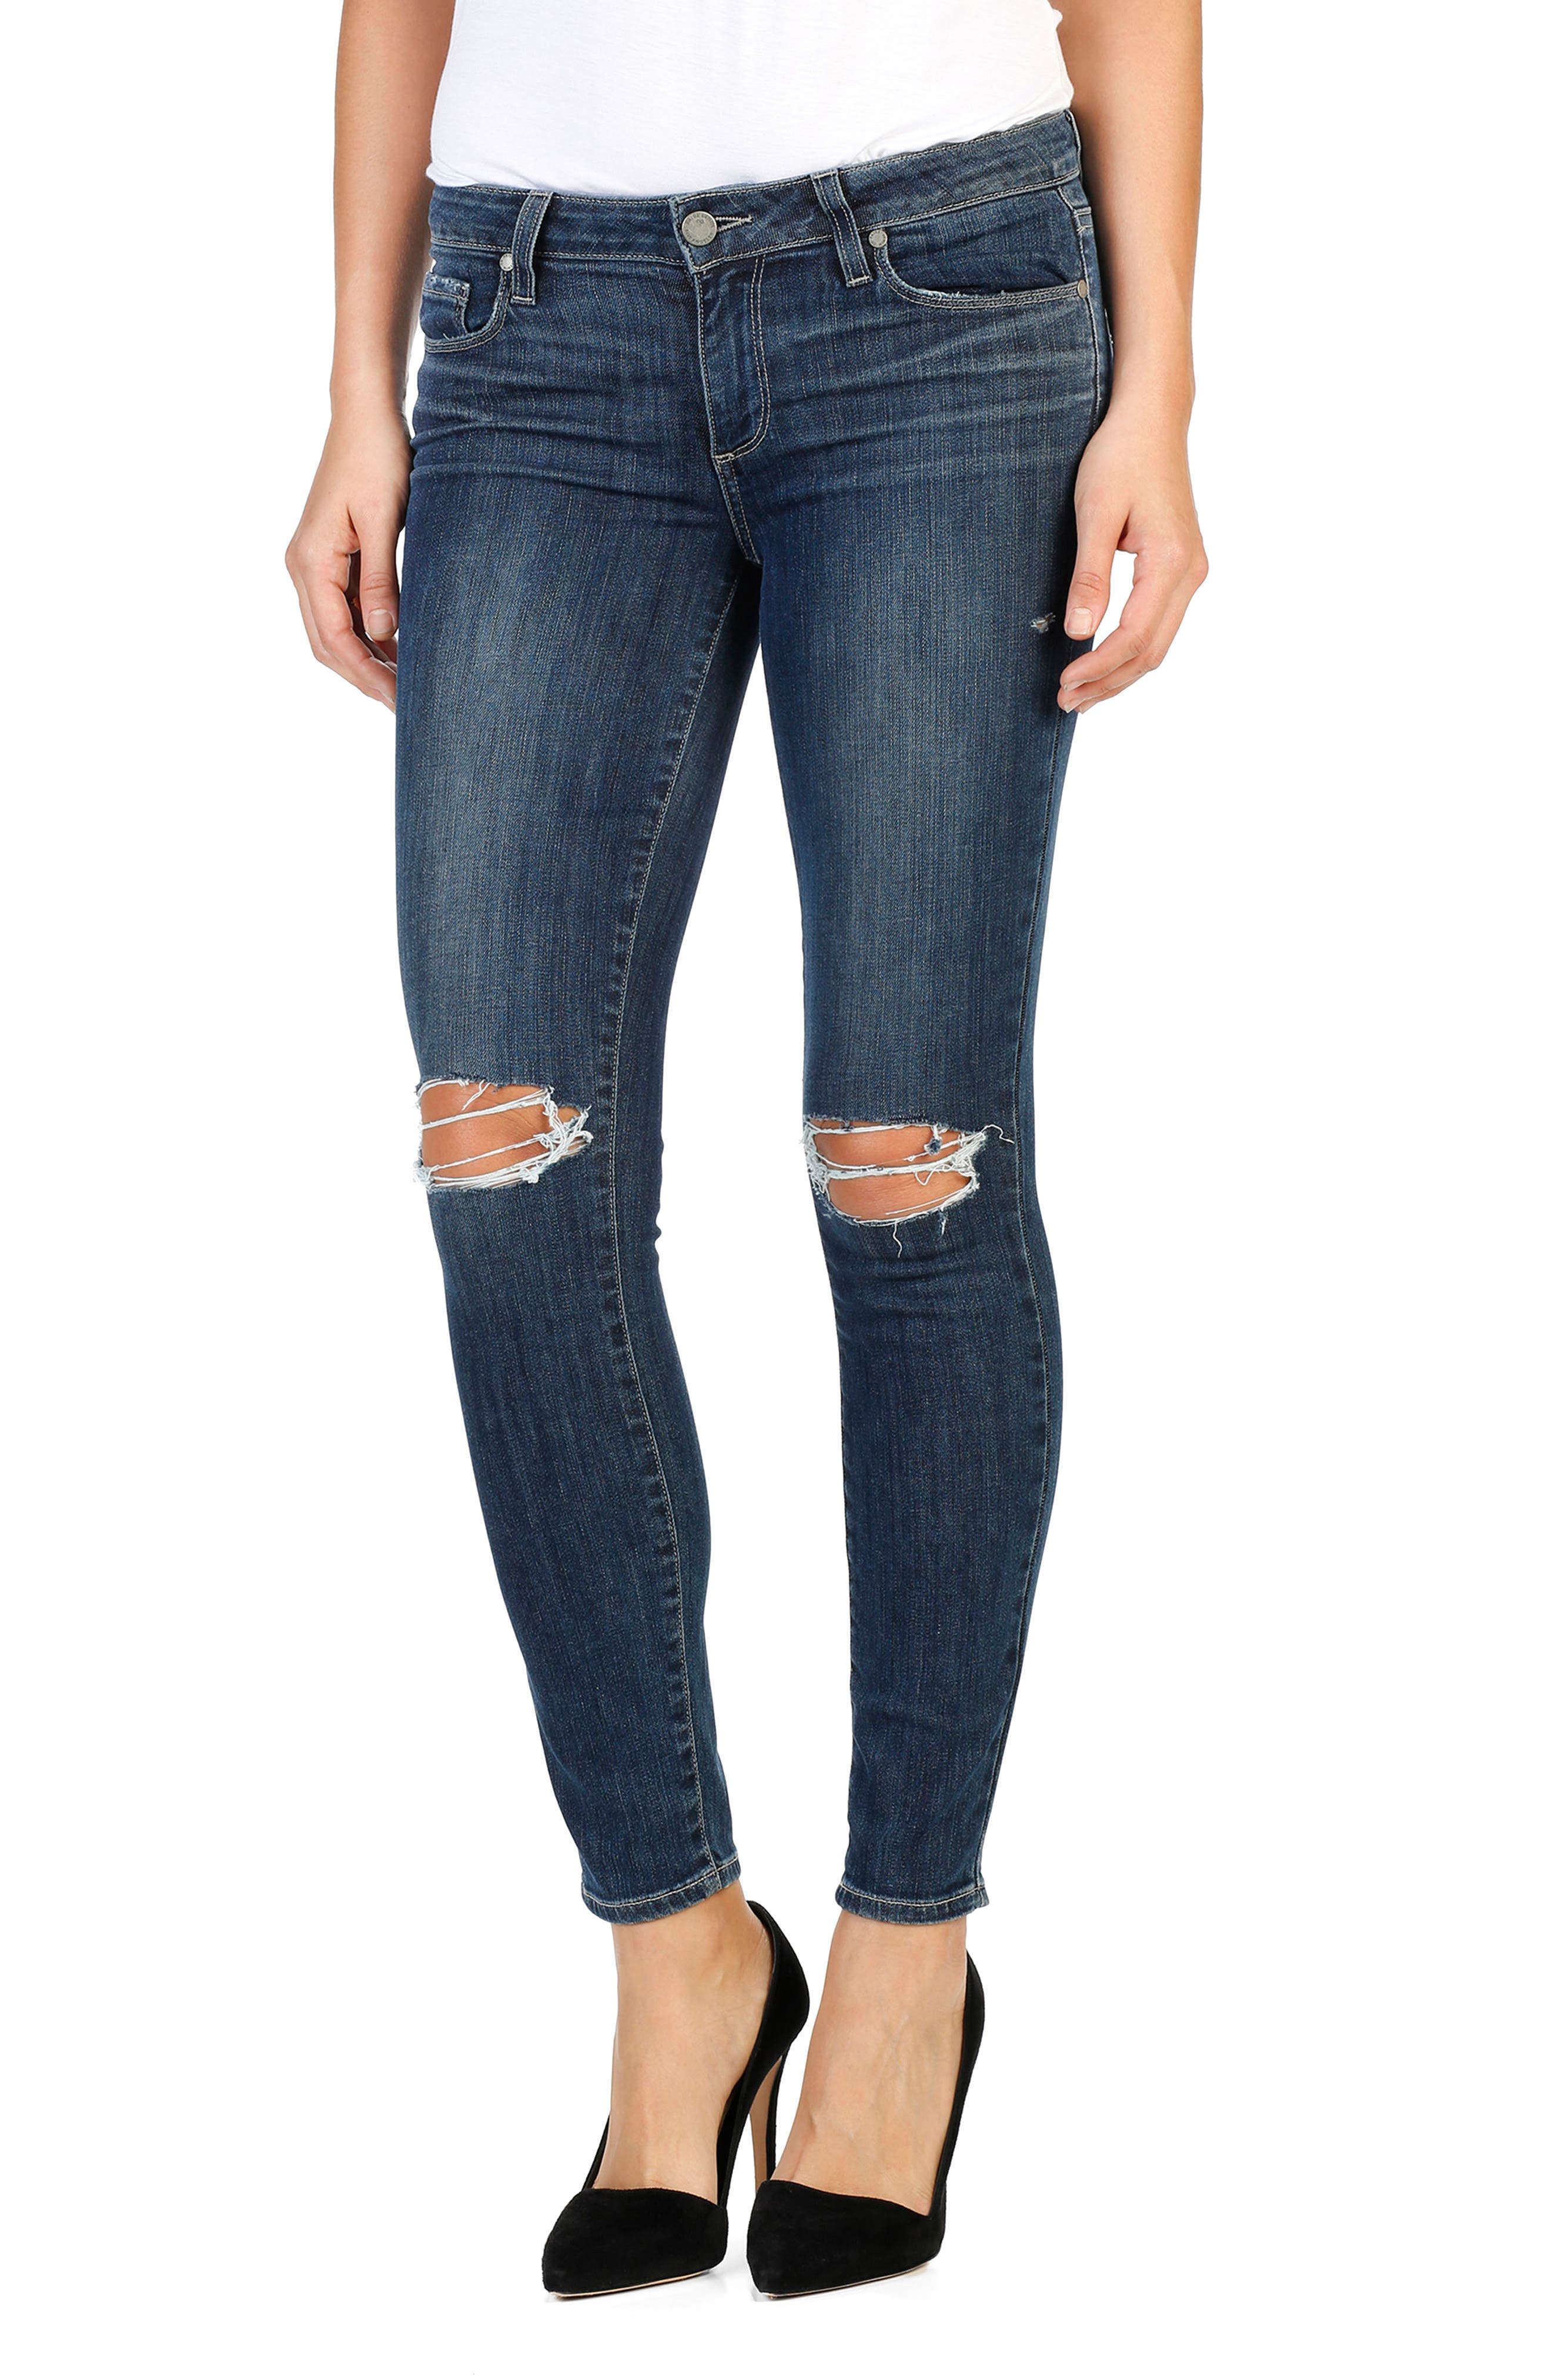 Legacy - Verdugo Ankle Skinny Jeans,                             Main thumbnail 1, color,                             Donna Distressed